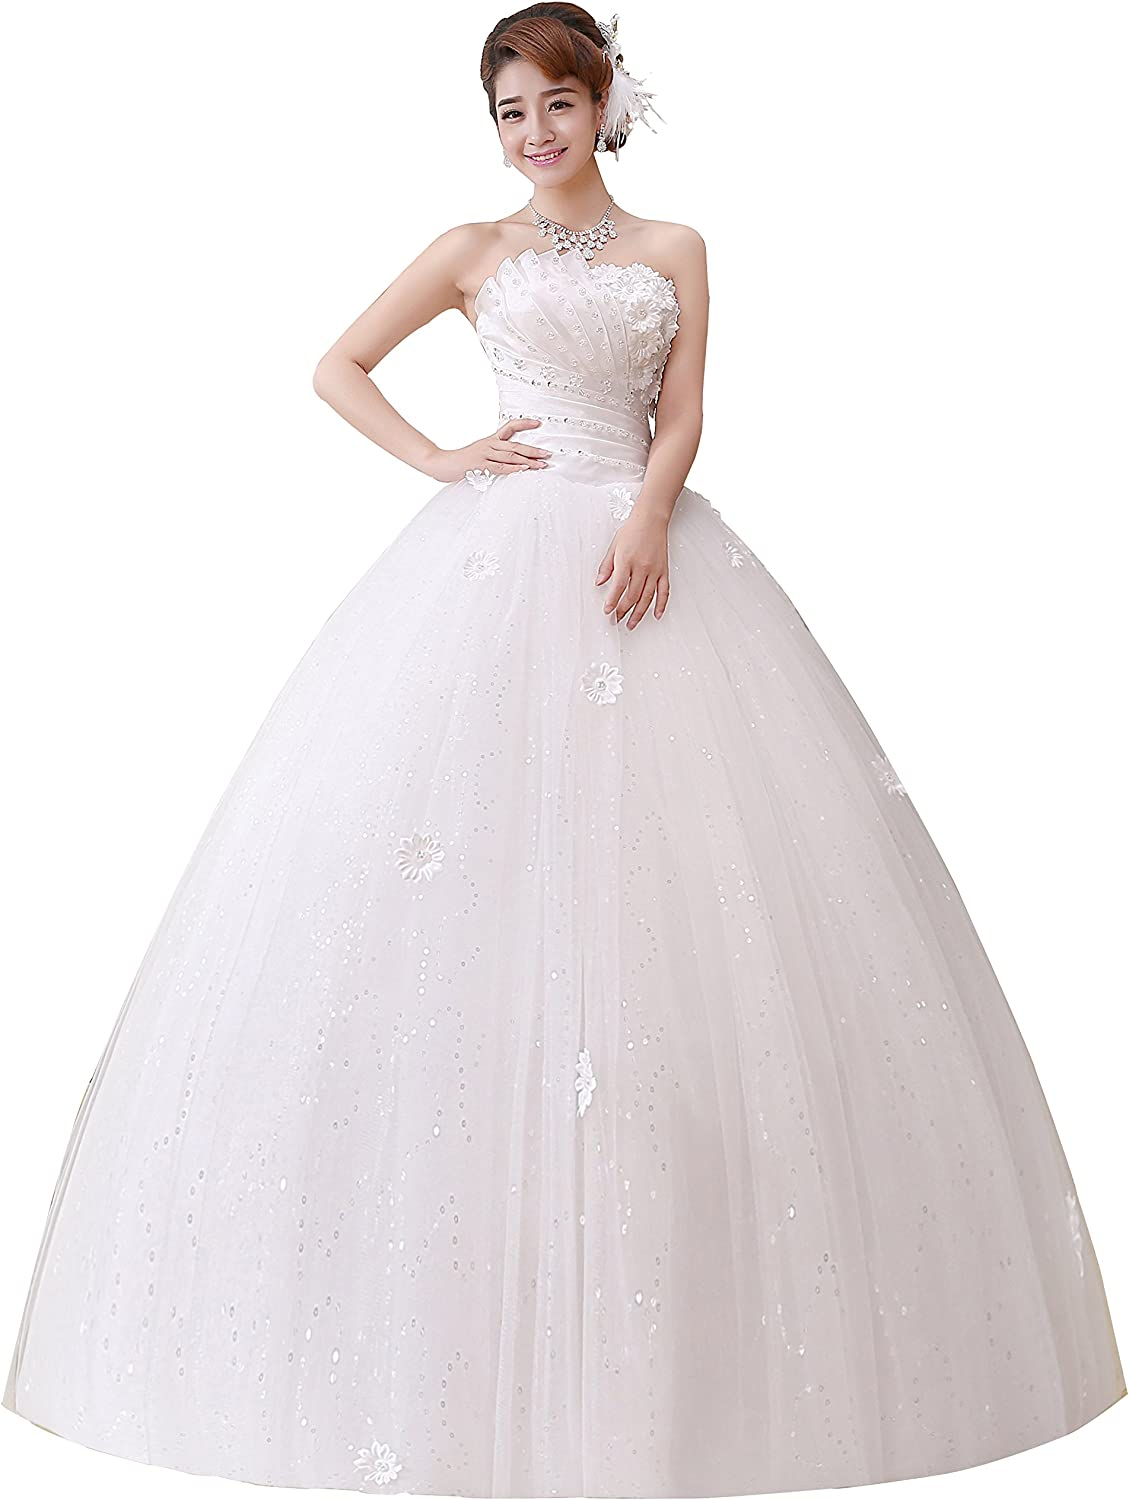 Clover Bridal 2017 Max 78% OFF Strapless Applique Ball Pleats We Beaded Gown Max 89% OFF